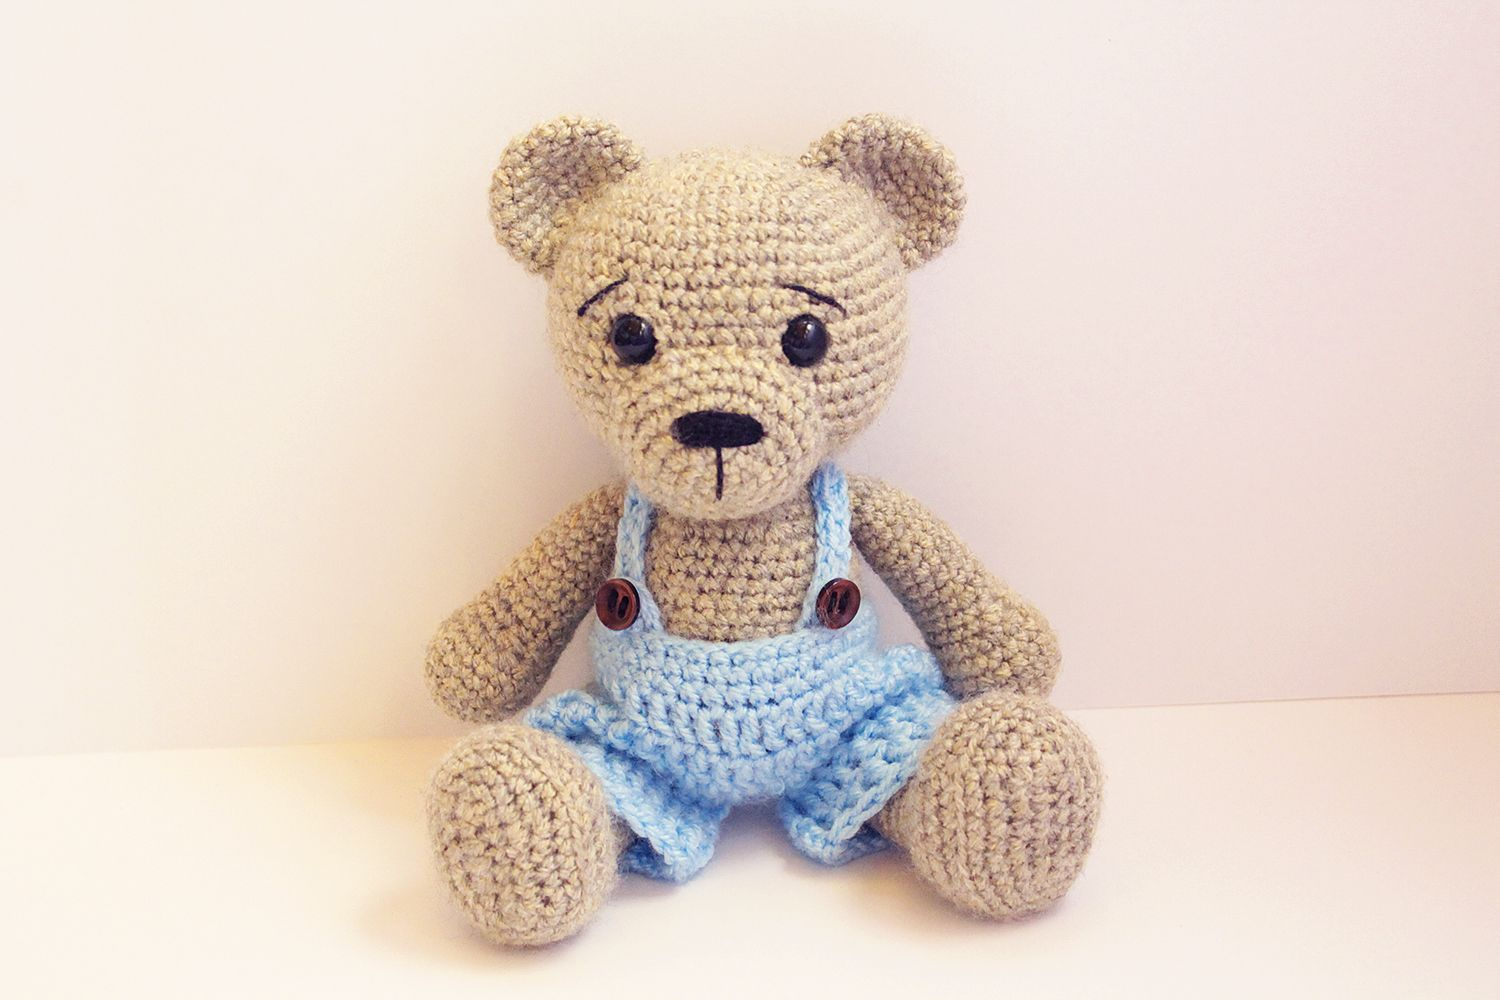 Crochet Patterns For Amigurumi Animals : Hello my name is anat tzach and i love to design amigurumi